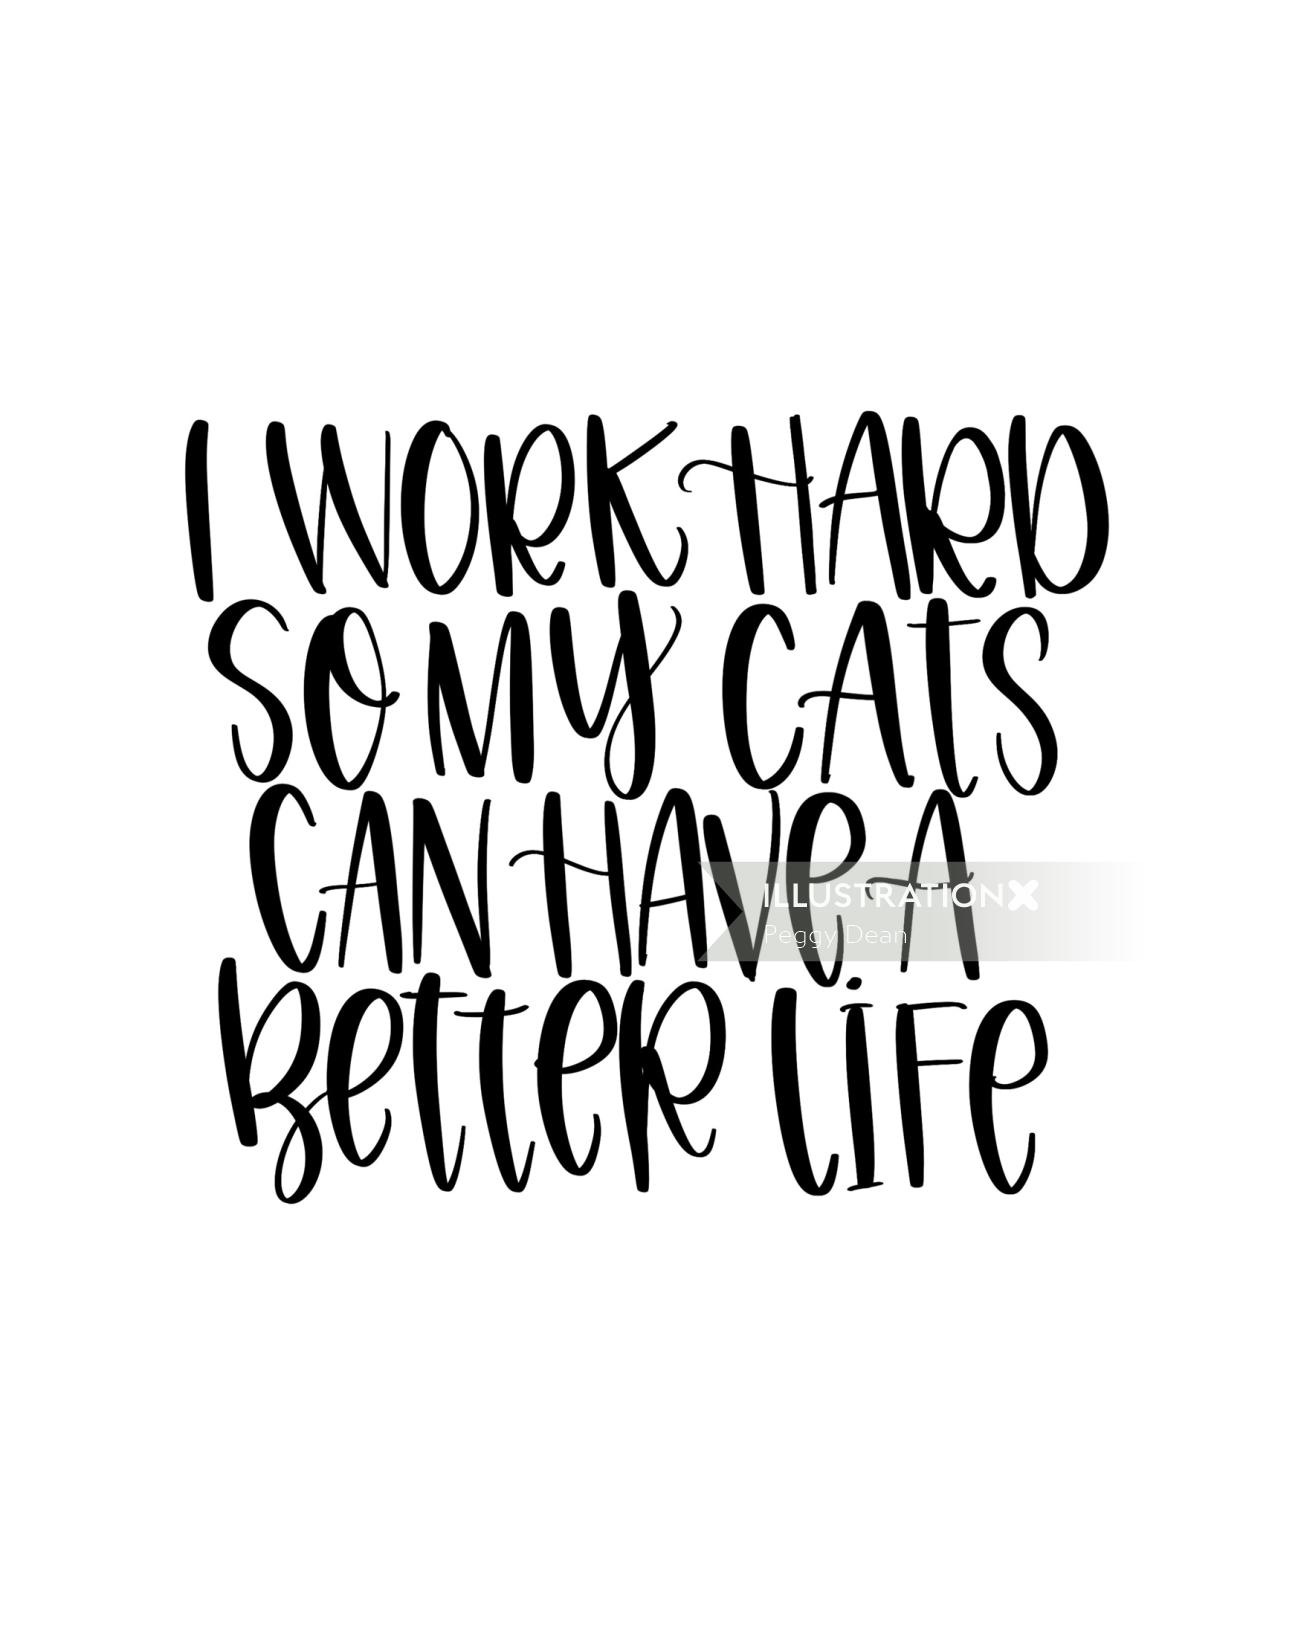 I work hard so my cats can have better life lettering